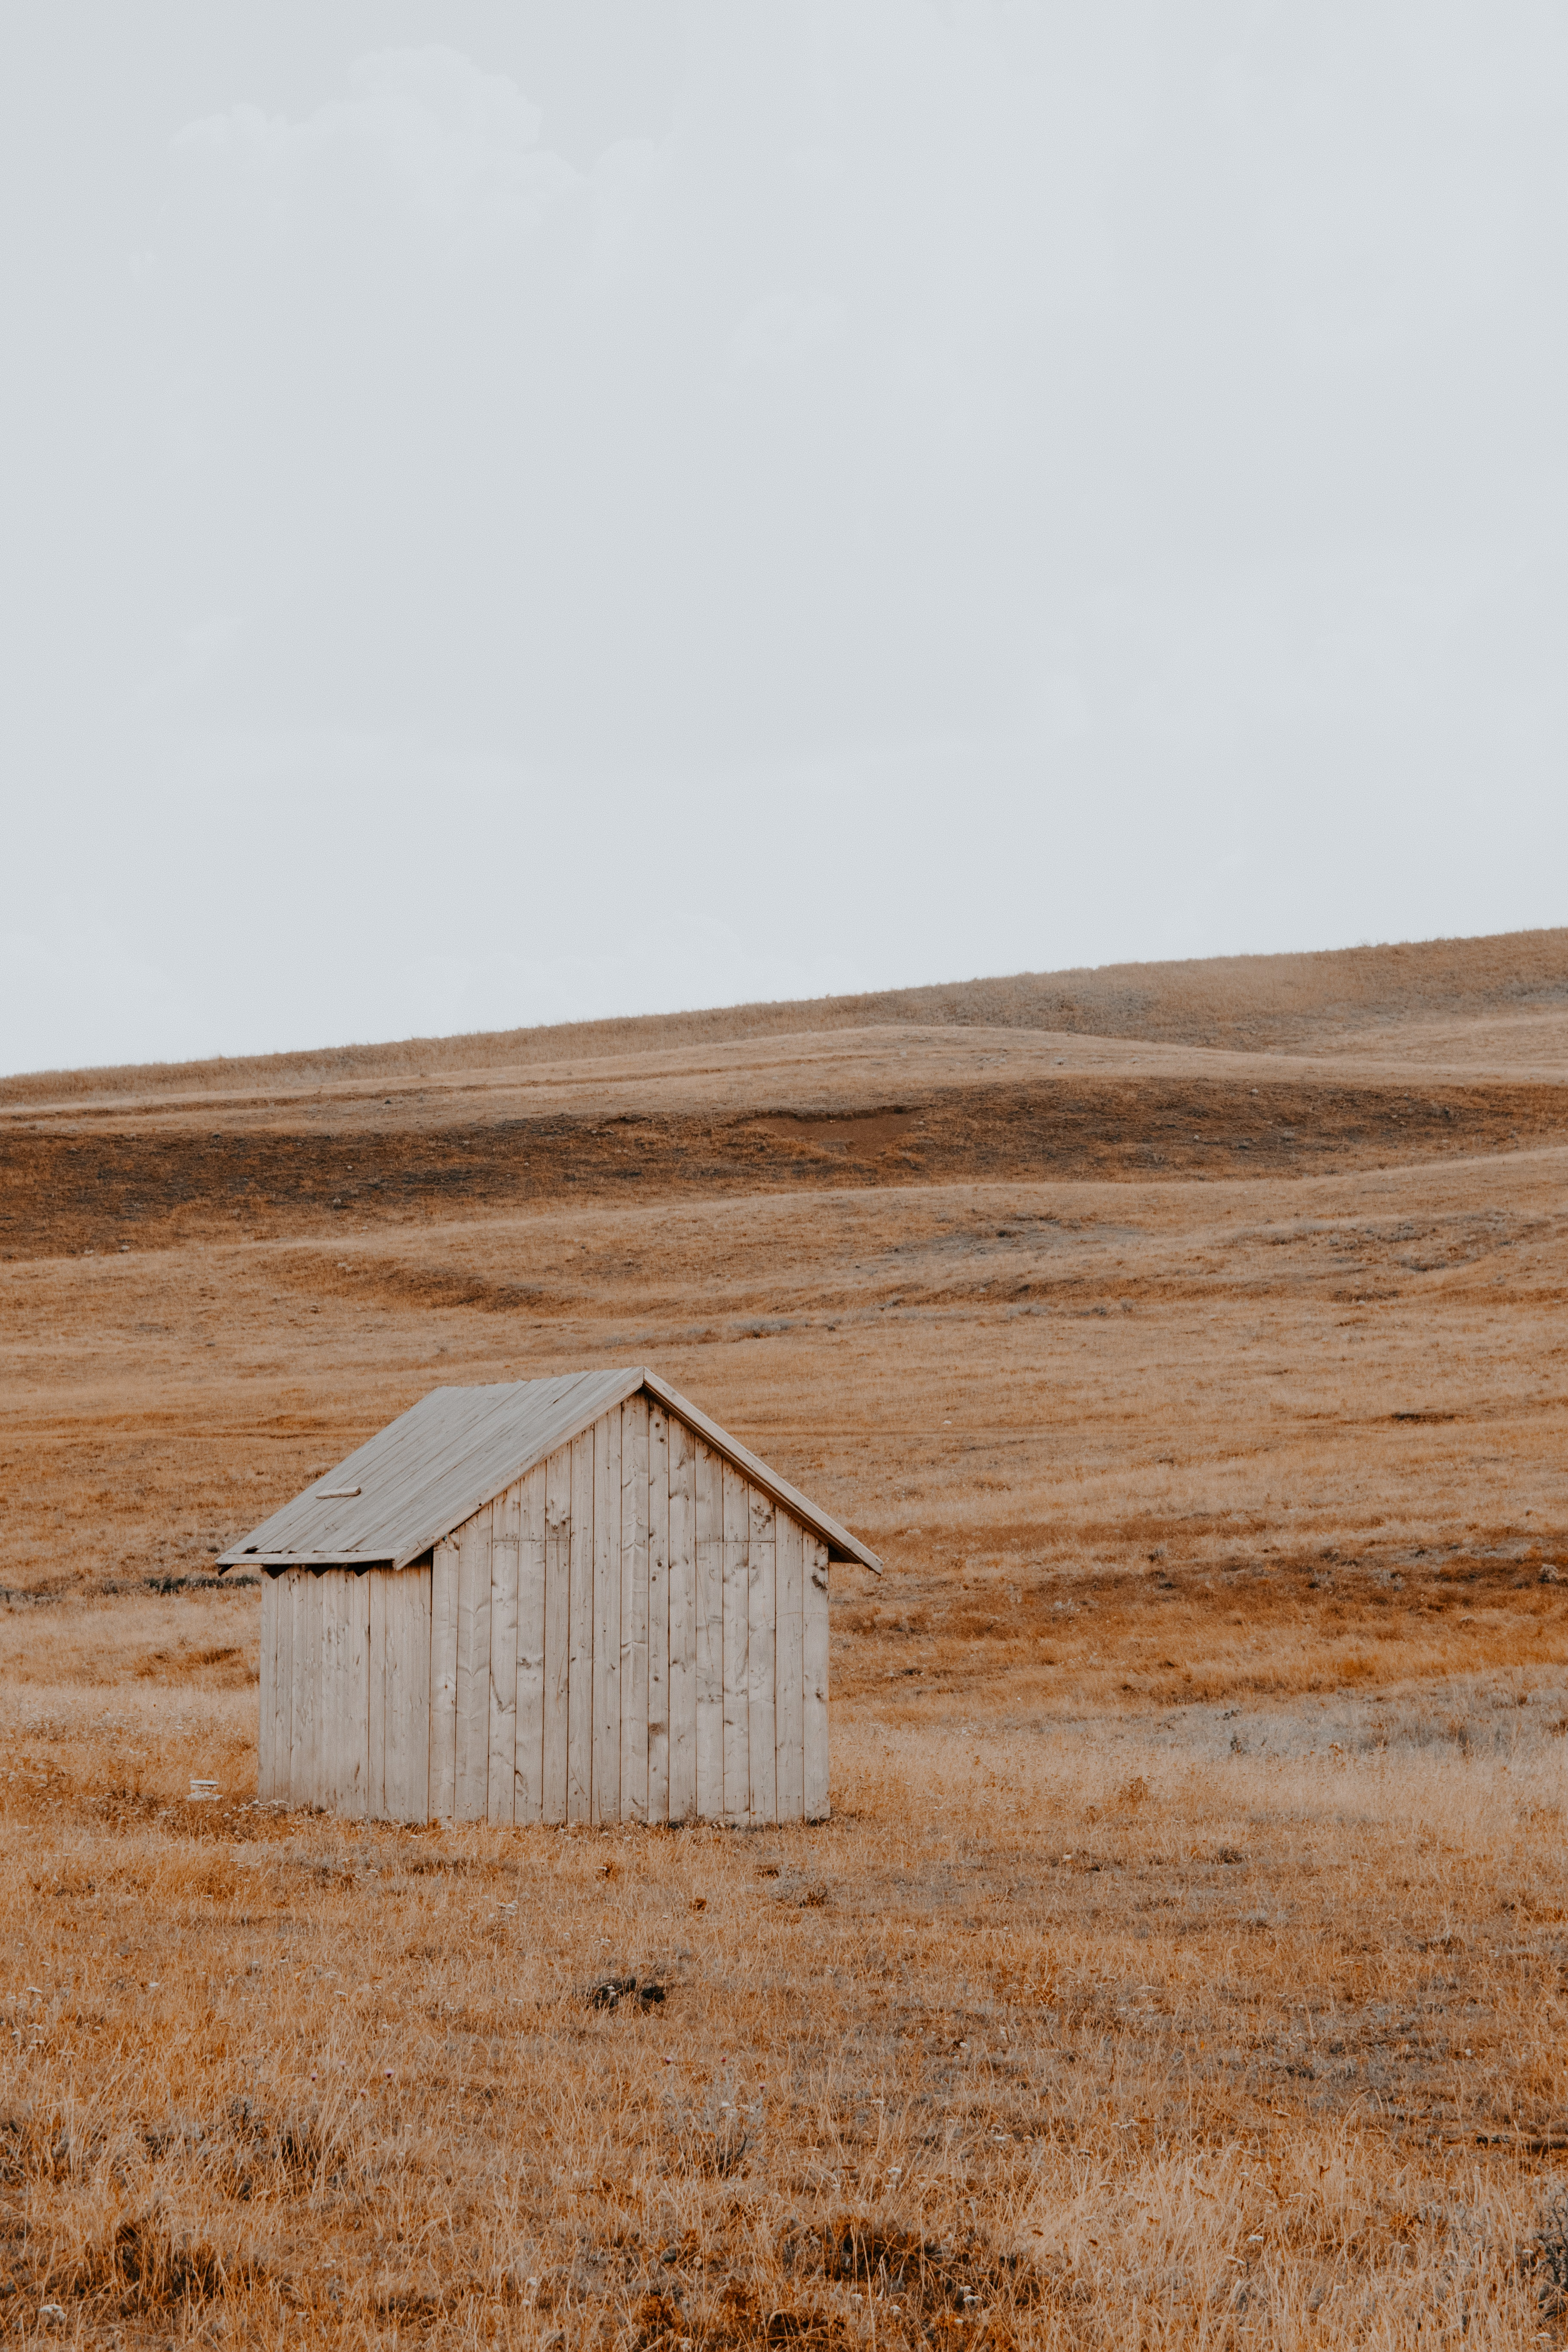 beige wooden shed on top of grass field